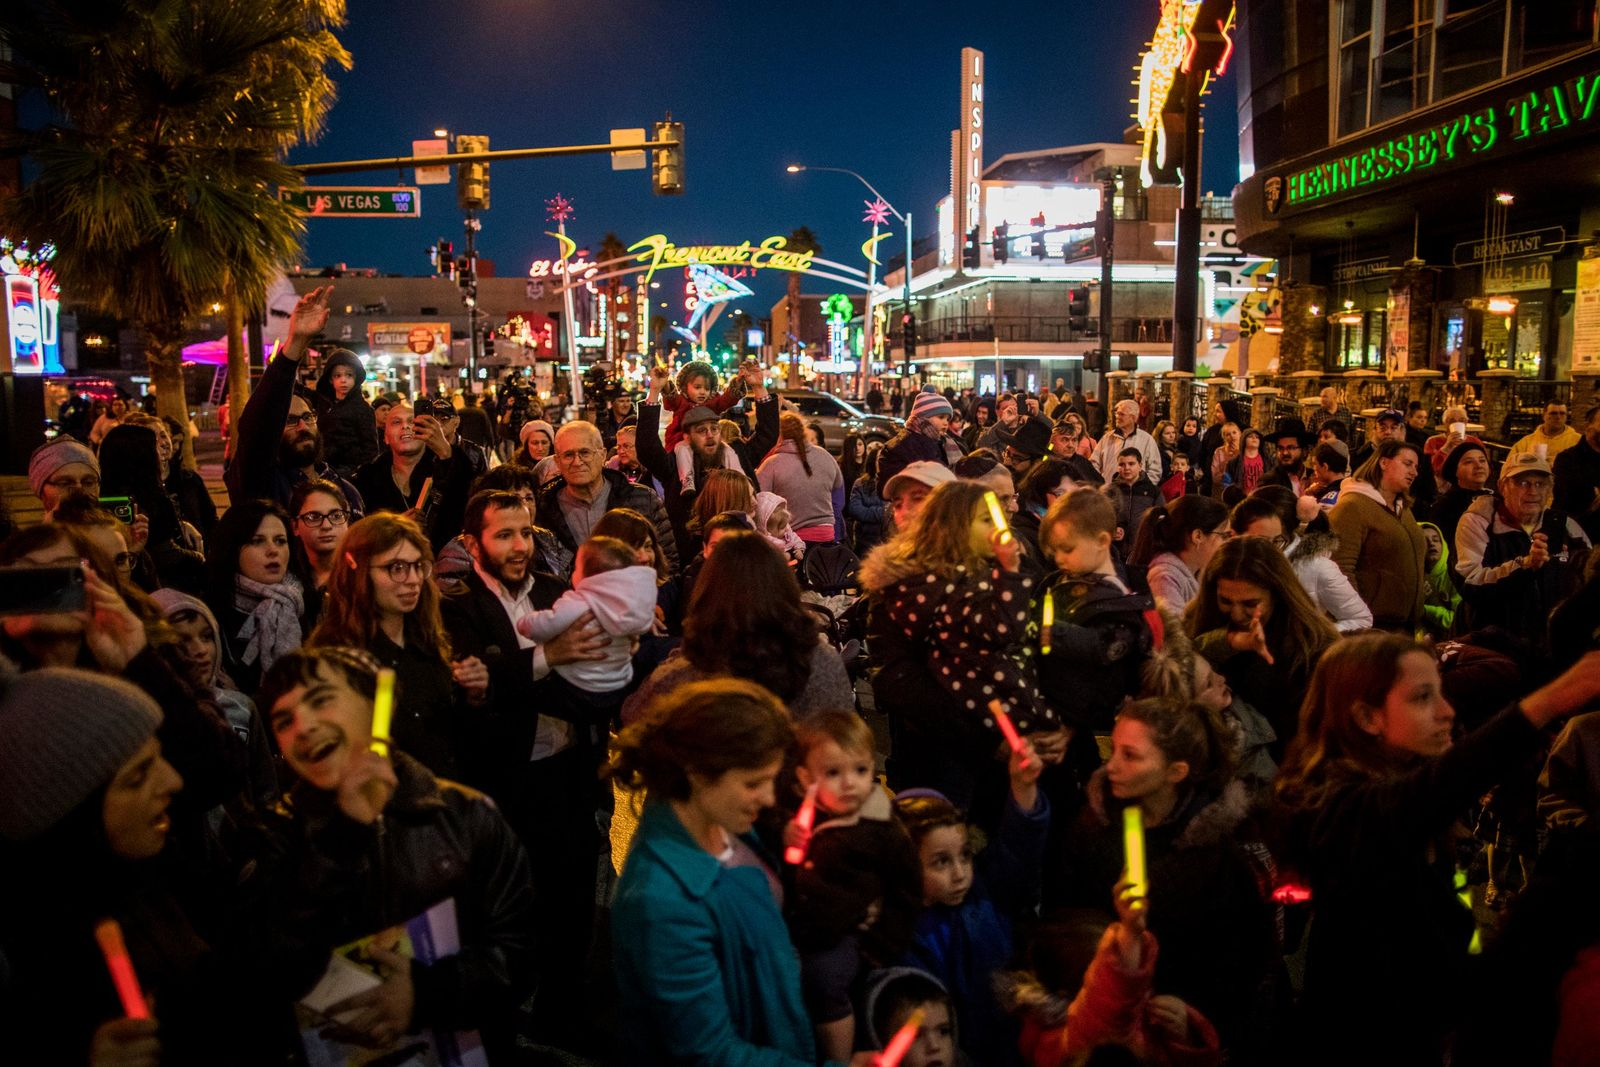 Crowds watch Rabbi Shea Harlig light the Grand Menorah in downtown Las Vegas on Sunday, Dec. 2. The Grand Menorah will remain on display throughout the Hanukkah season. CREDIT: Joe Buglewicz/Las Vegas News Bureau